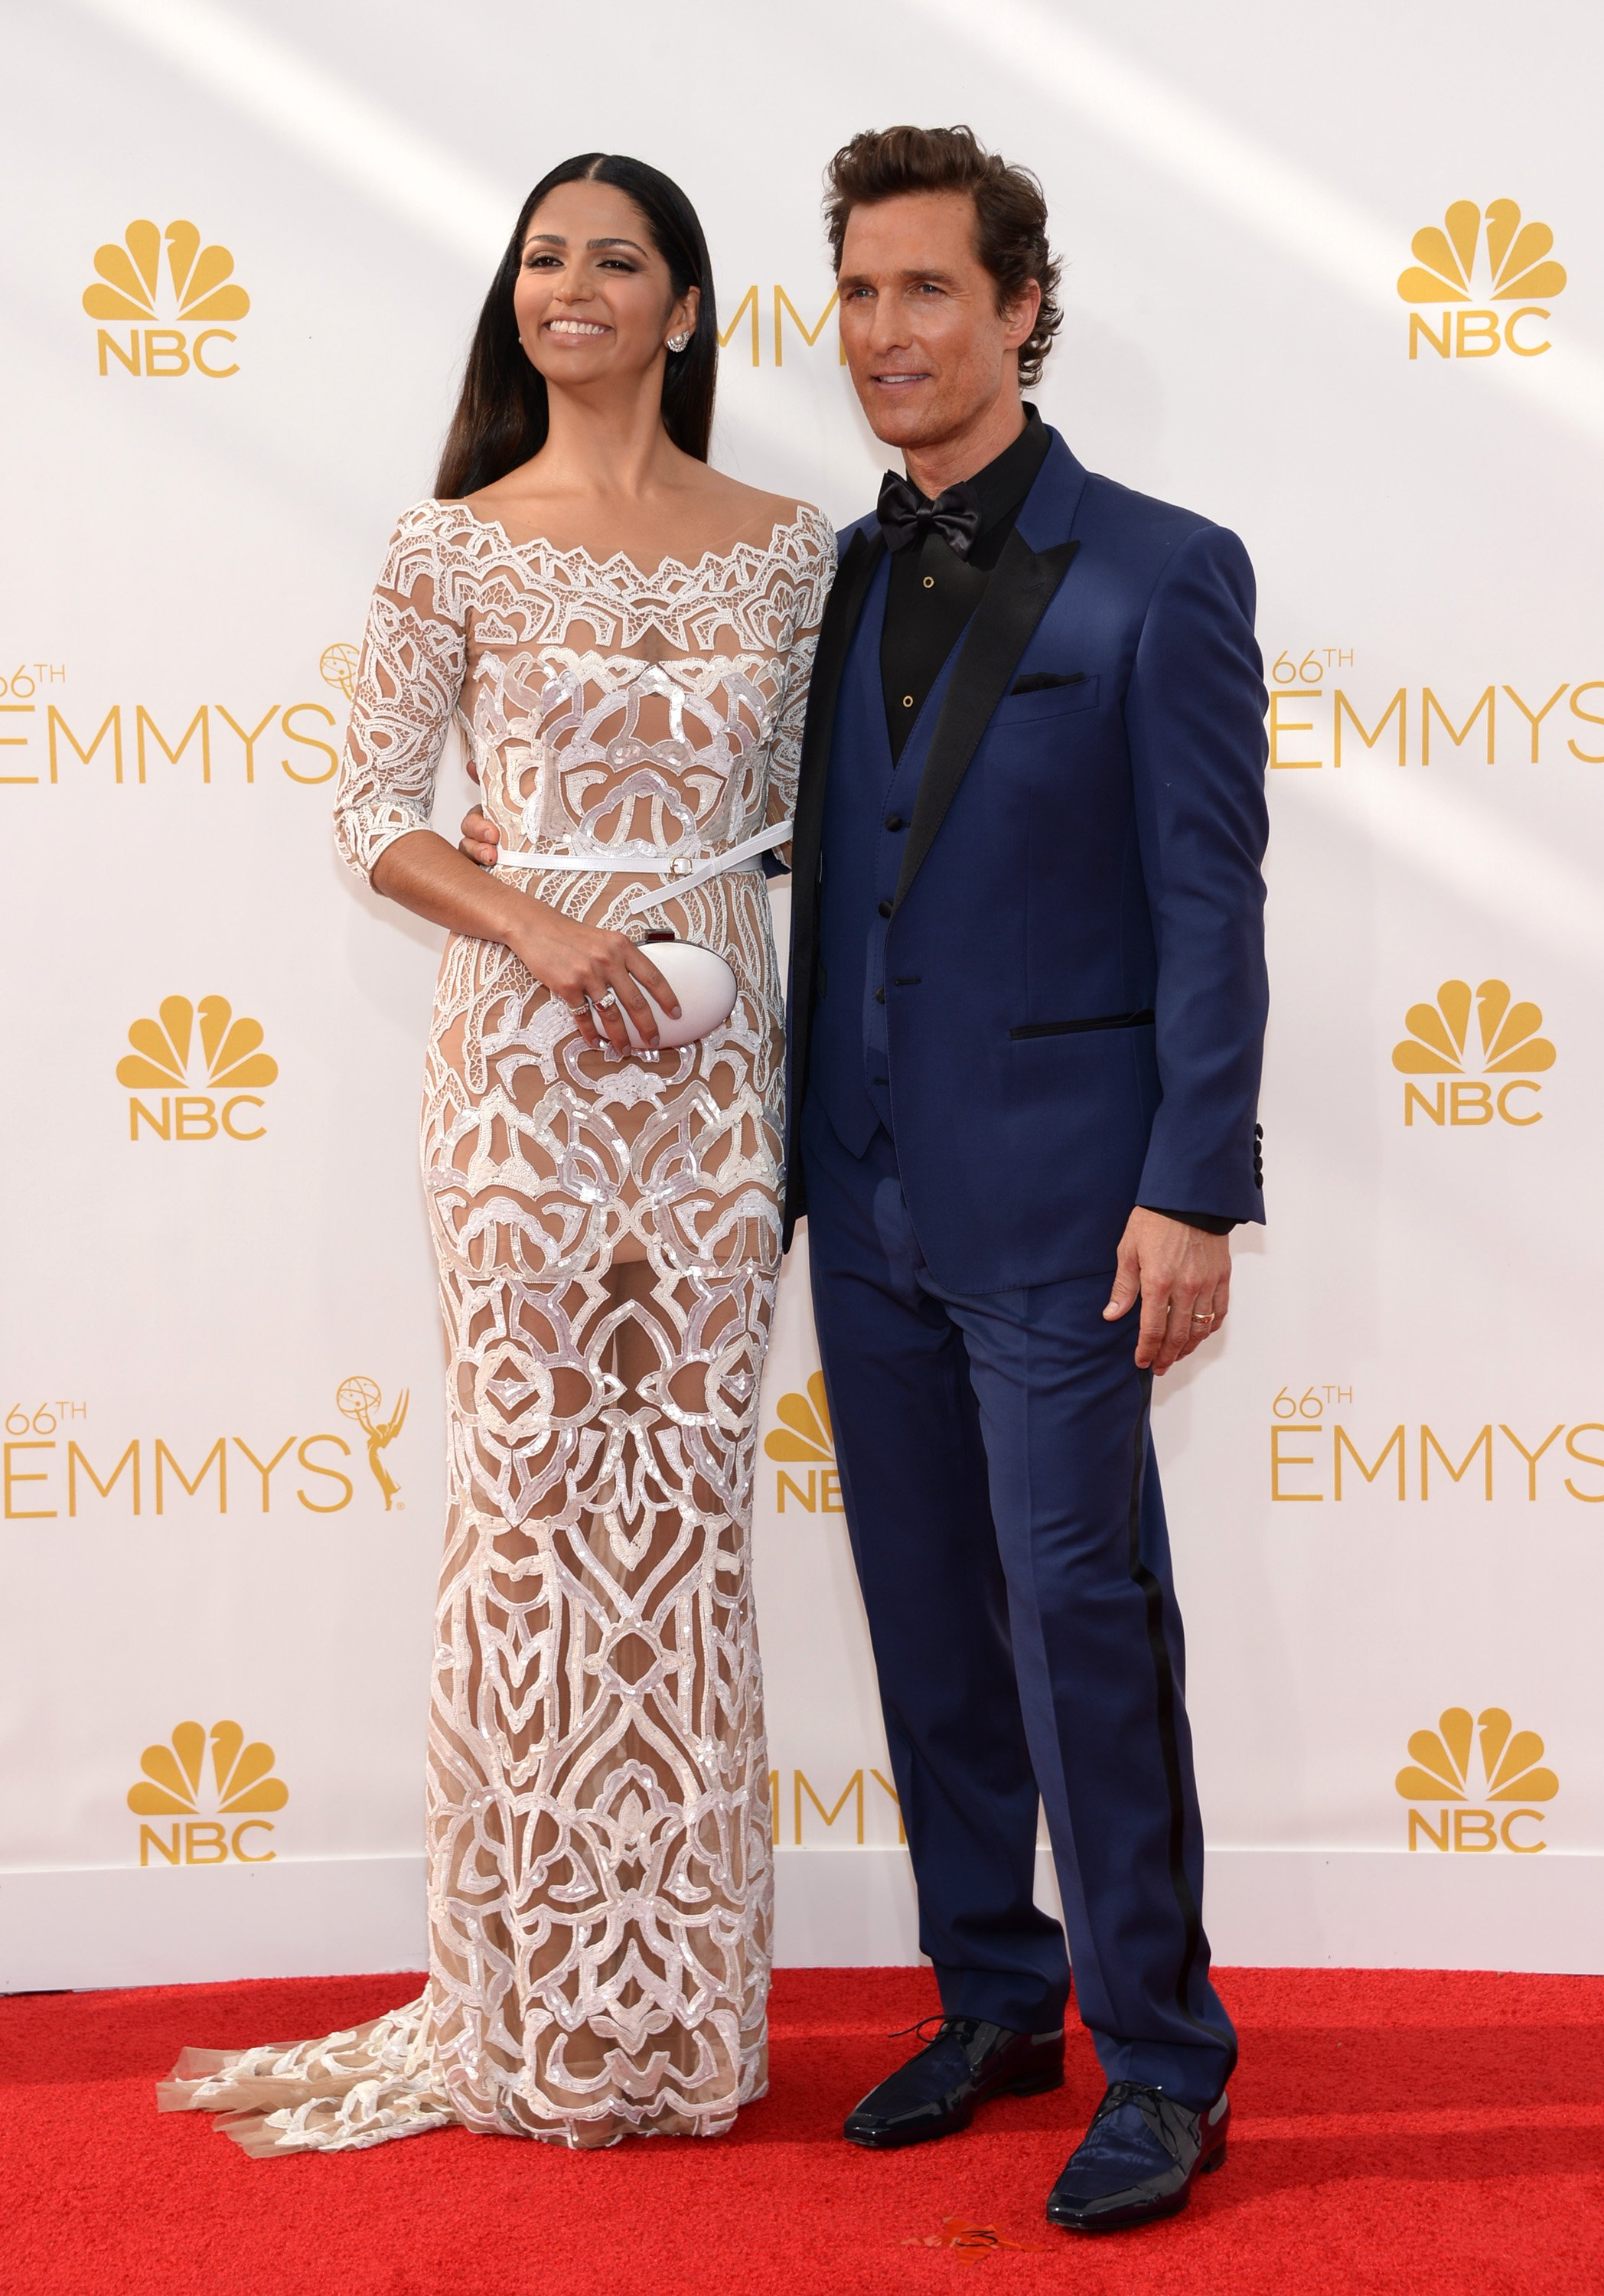 Camila Alves, left, and Matthew McConaughey arrive at the 66th Primetime Emmy Awards at the Nokia Theatre L.A. Live on Monday, Aug. 25, 2014, in Los Angeles.